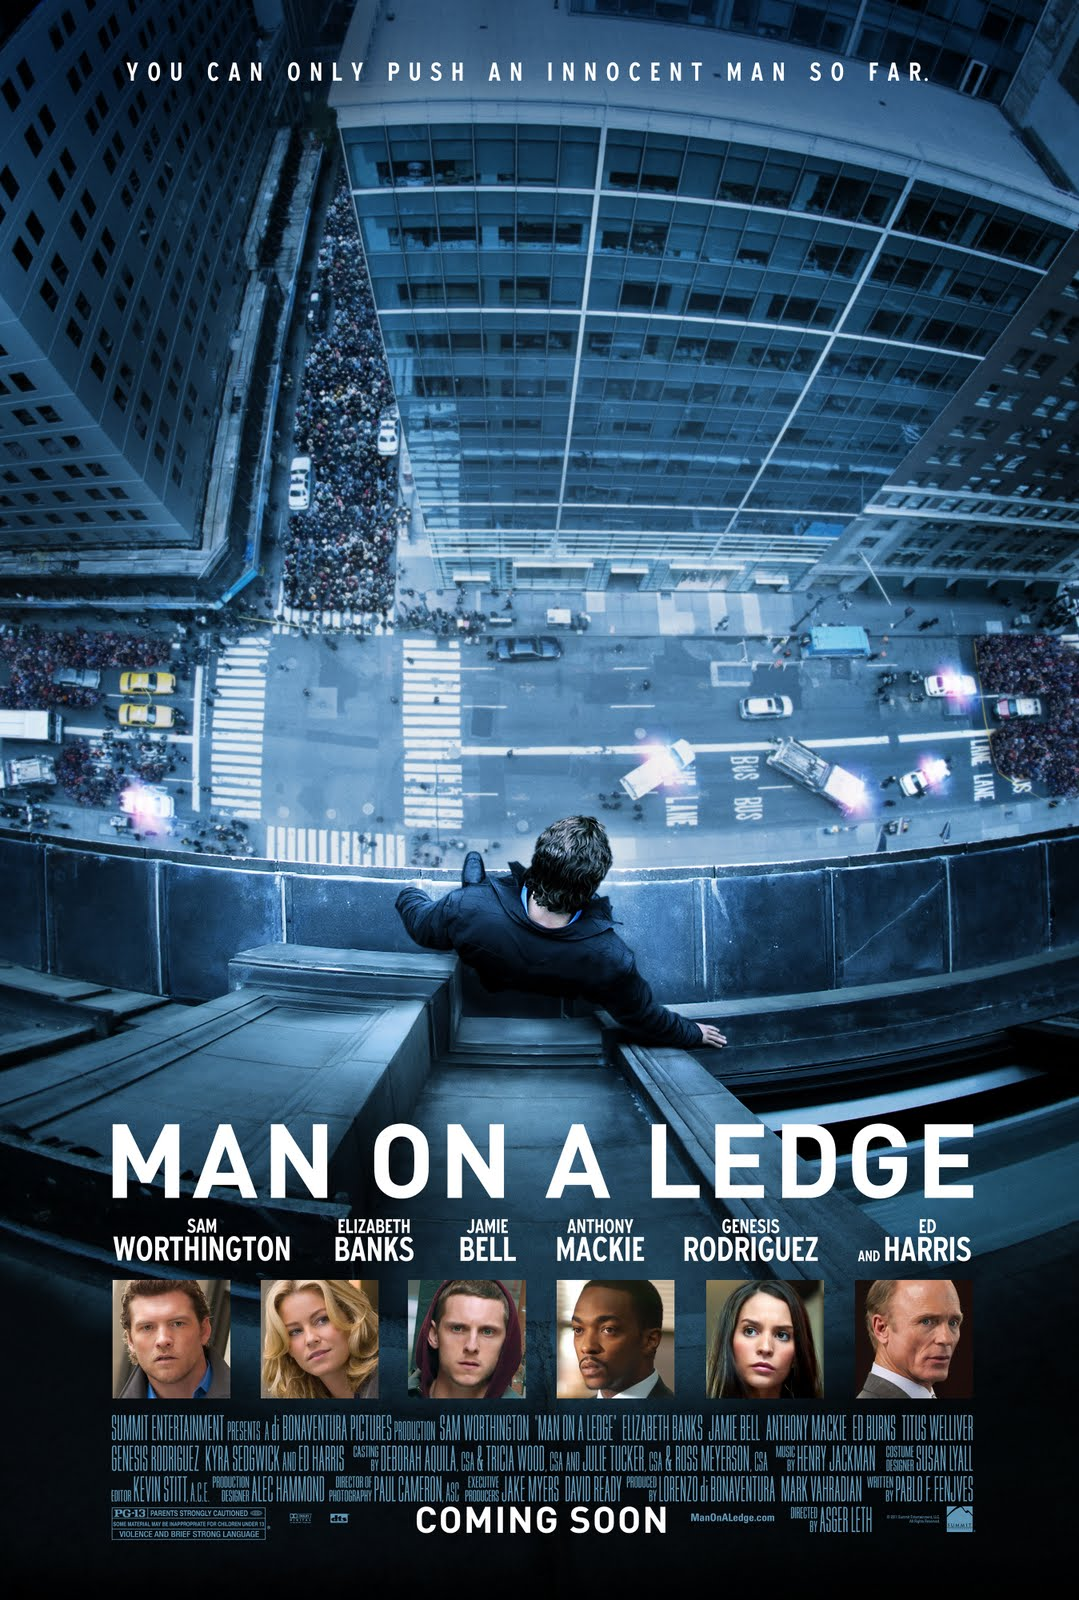 http://2.bp.blogspot.com/-o2urpA3iSHI/TyTRtSA-U-I/AAAAAAAAPm8/l37P1H9m-8U/s1600/man-on-a-ledge-movie-poster-01.jpg